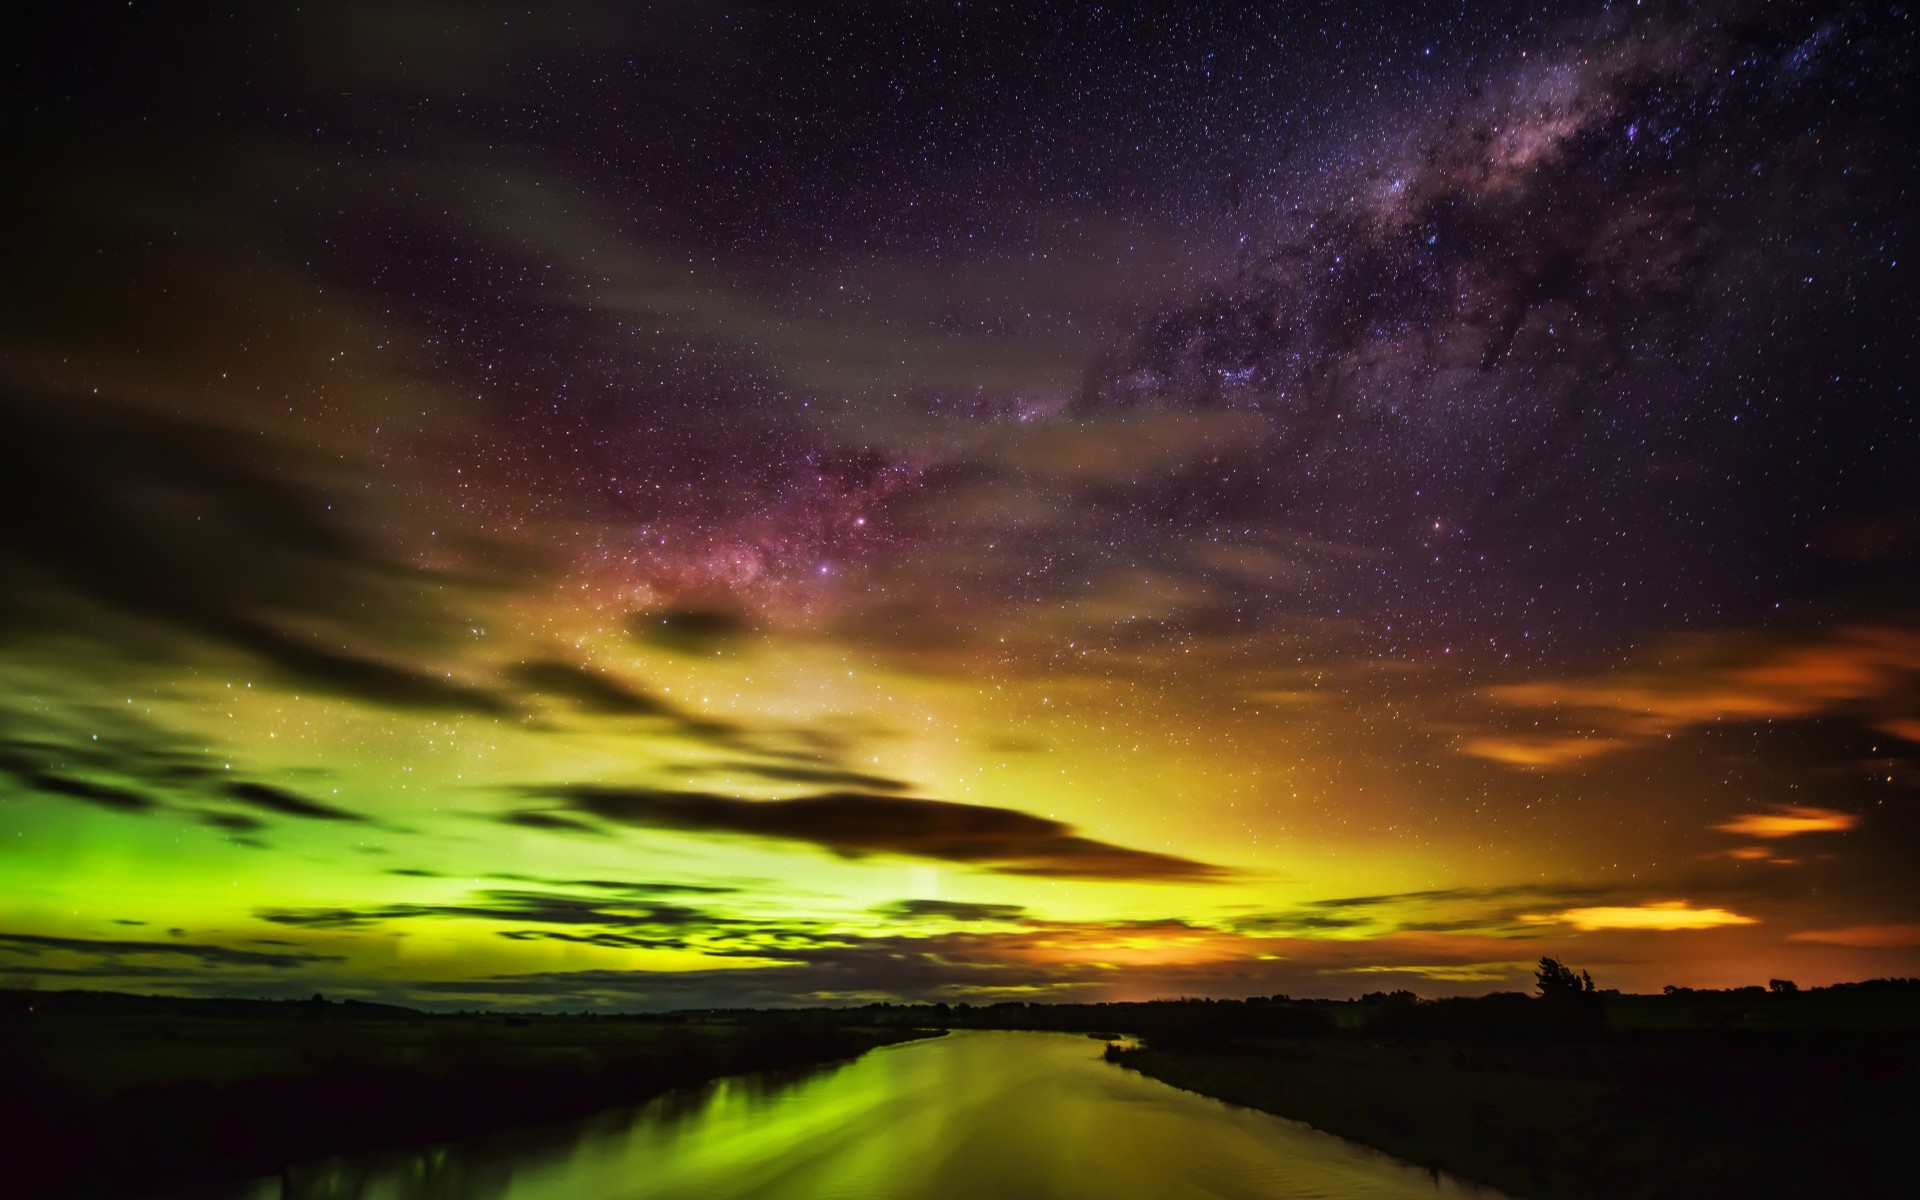 General 1920x1200 New Zealand nebula stars night river colorful